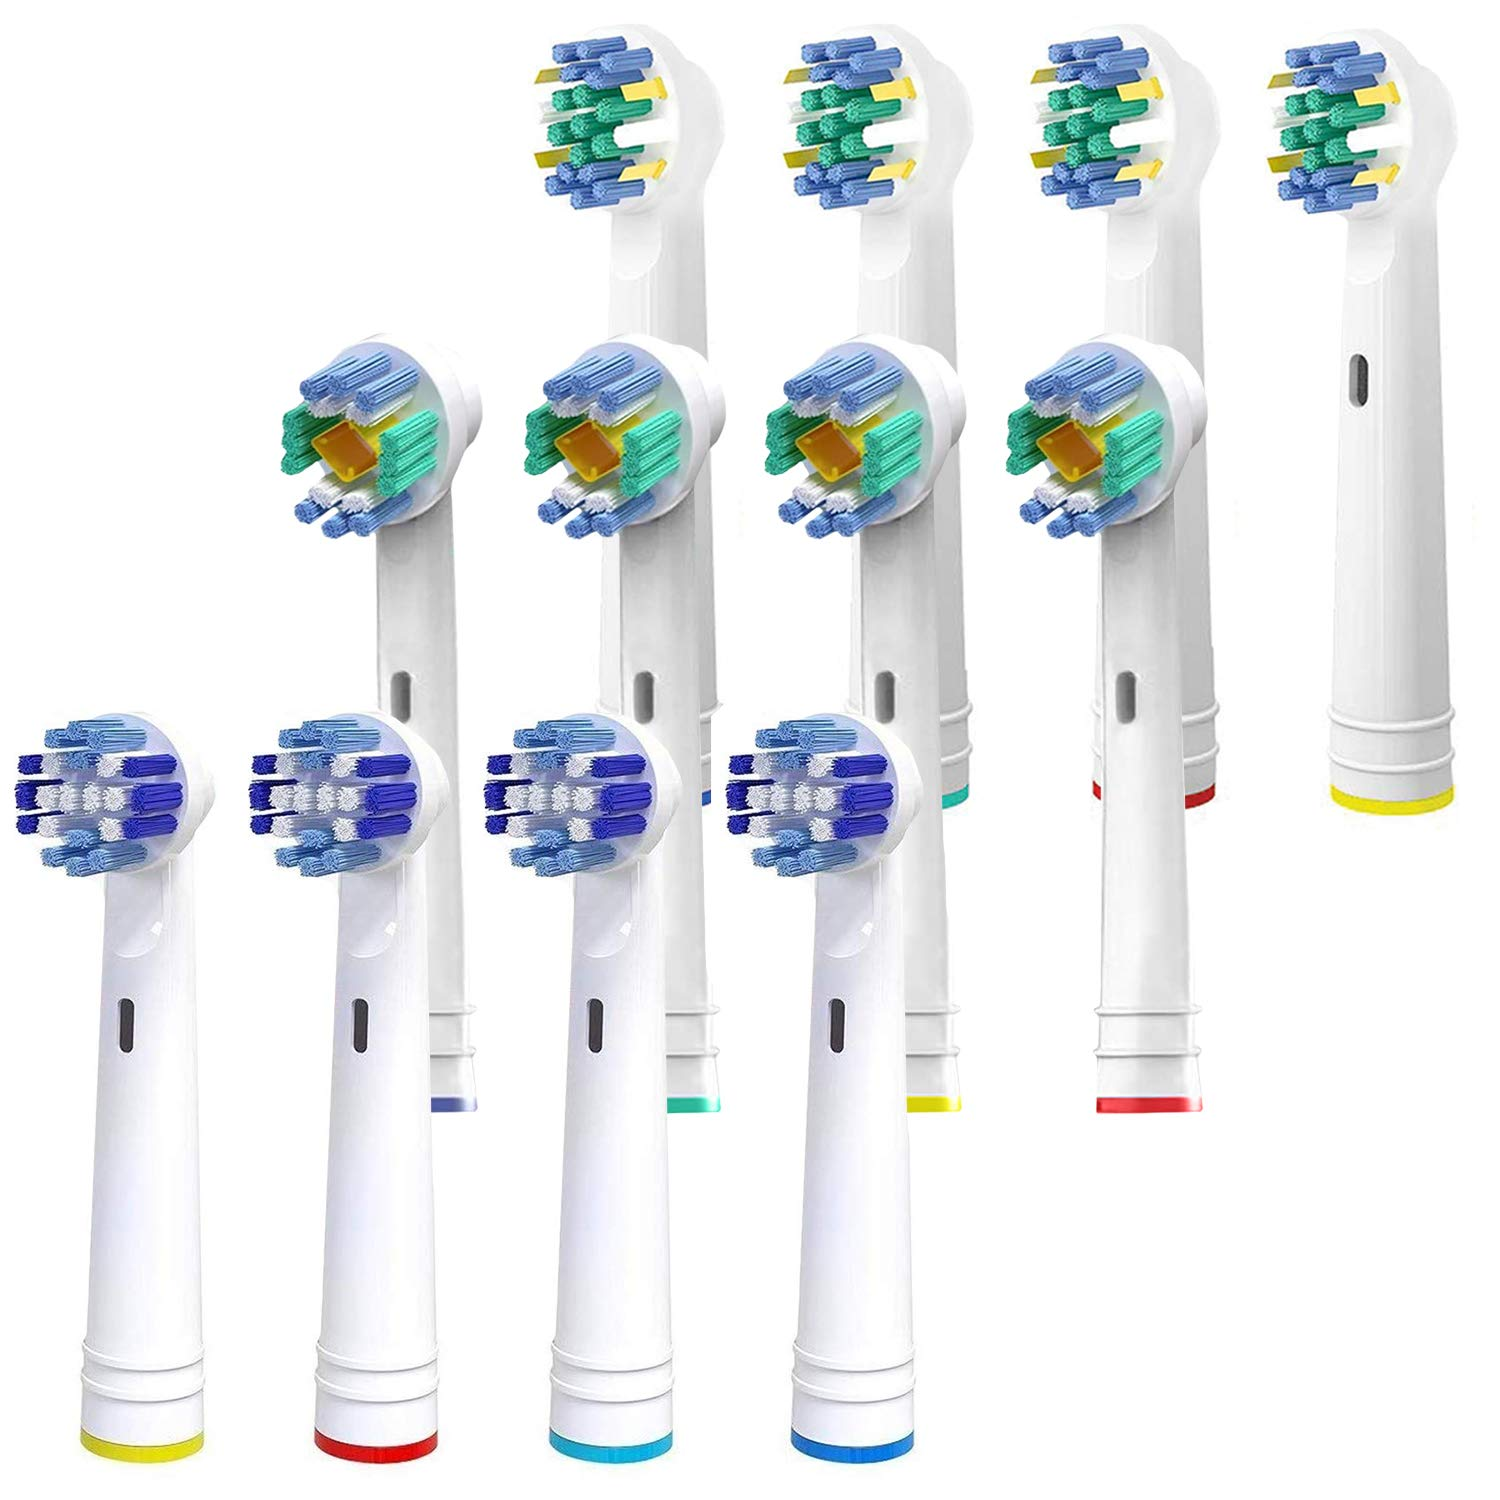 Replacement Brush Heads Compatible With Oral B Braun- 12 PACK Generic Assorted Brushes For Oralb Electric Toothbrush- 4 Precise, 4 Flossing & 4 Pro Whitening- Fits Oral-B 1000, Sonic, Clean &More